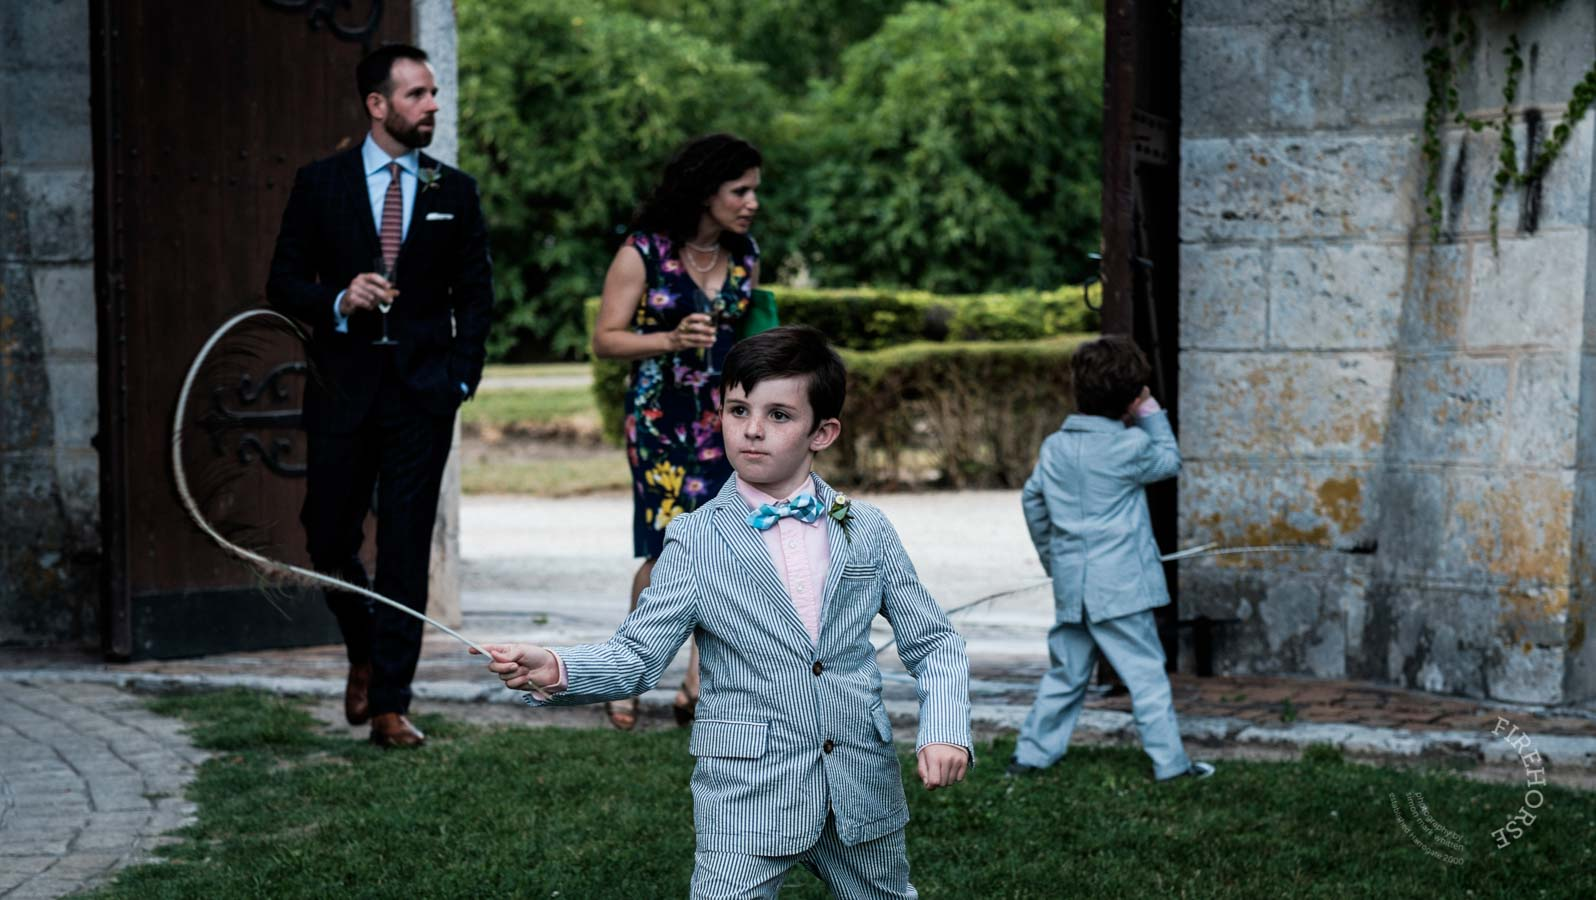 Lot-et-Garonne-Wedding-Photography-253